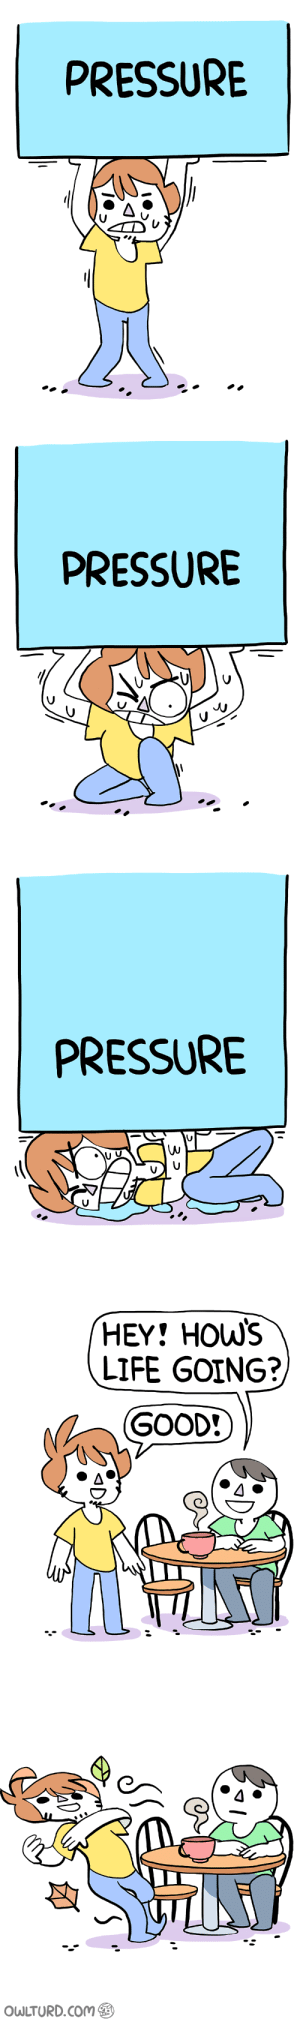 Life, Pressure, and Good: PRESSURE   PRESSURE   PRESSURE   HEY! HOw's  LIFE GOING?  GOOD!   OWLTURD.Com